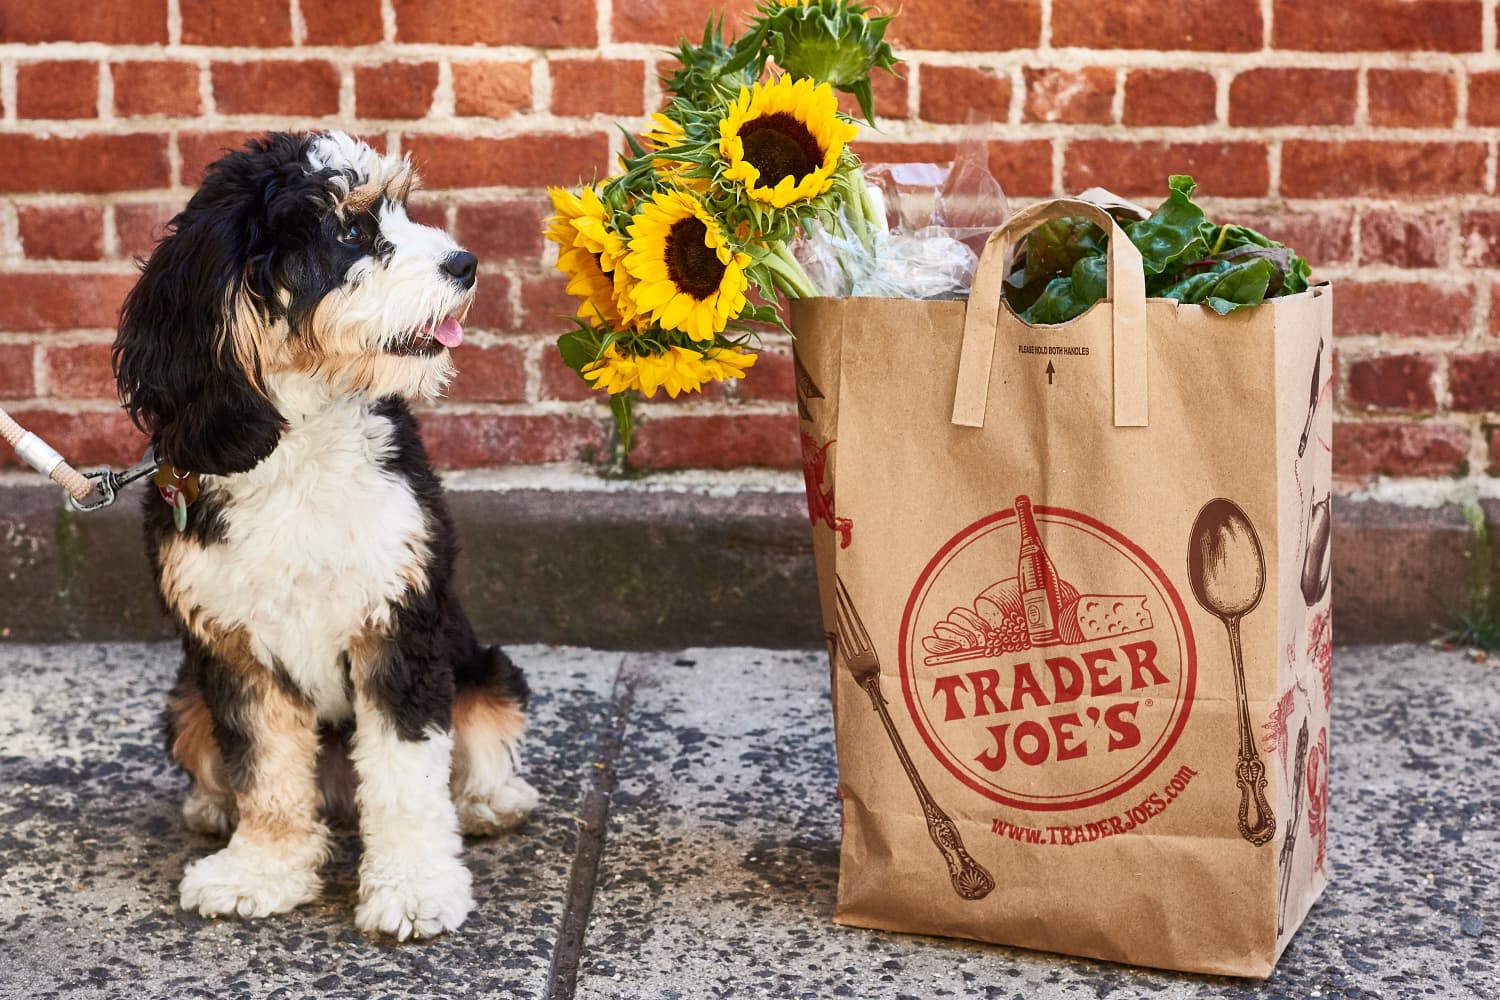 9 Instagram Accounts You Need to Follow if You're Obsessed With Trader Joe's